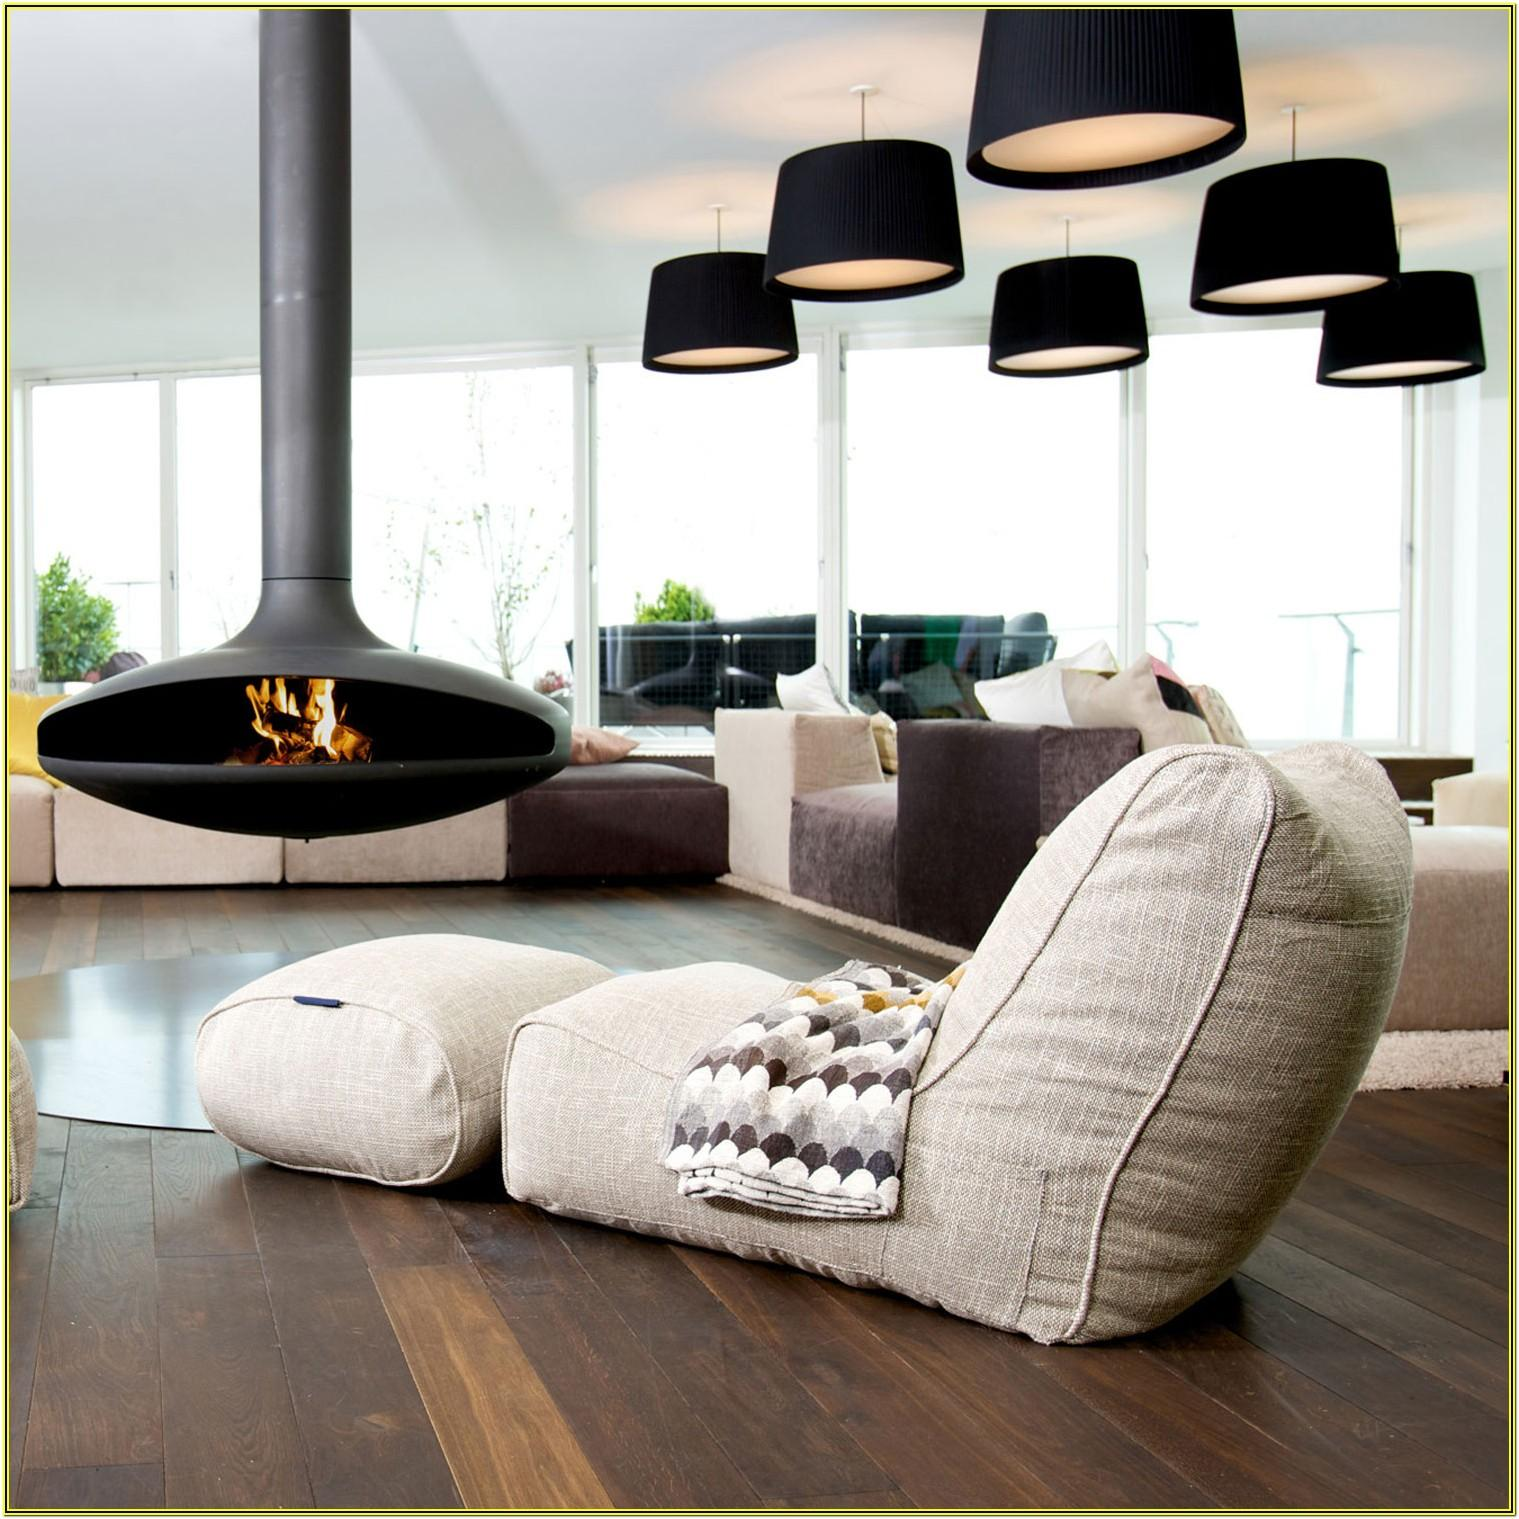 Living Room Ideas With Giant Bean Bag